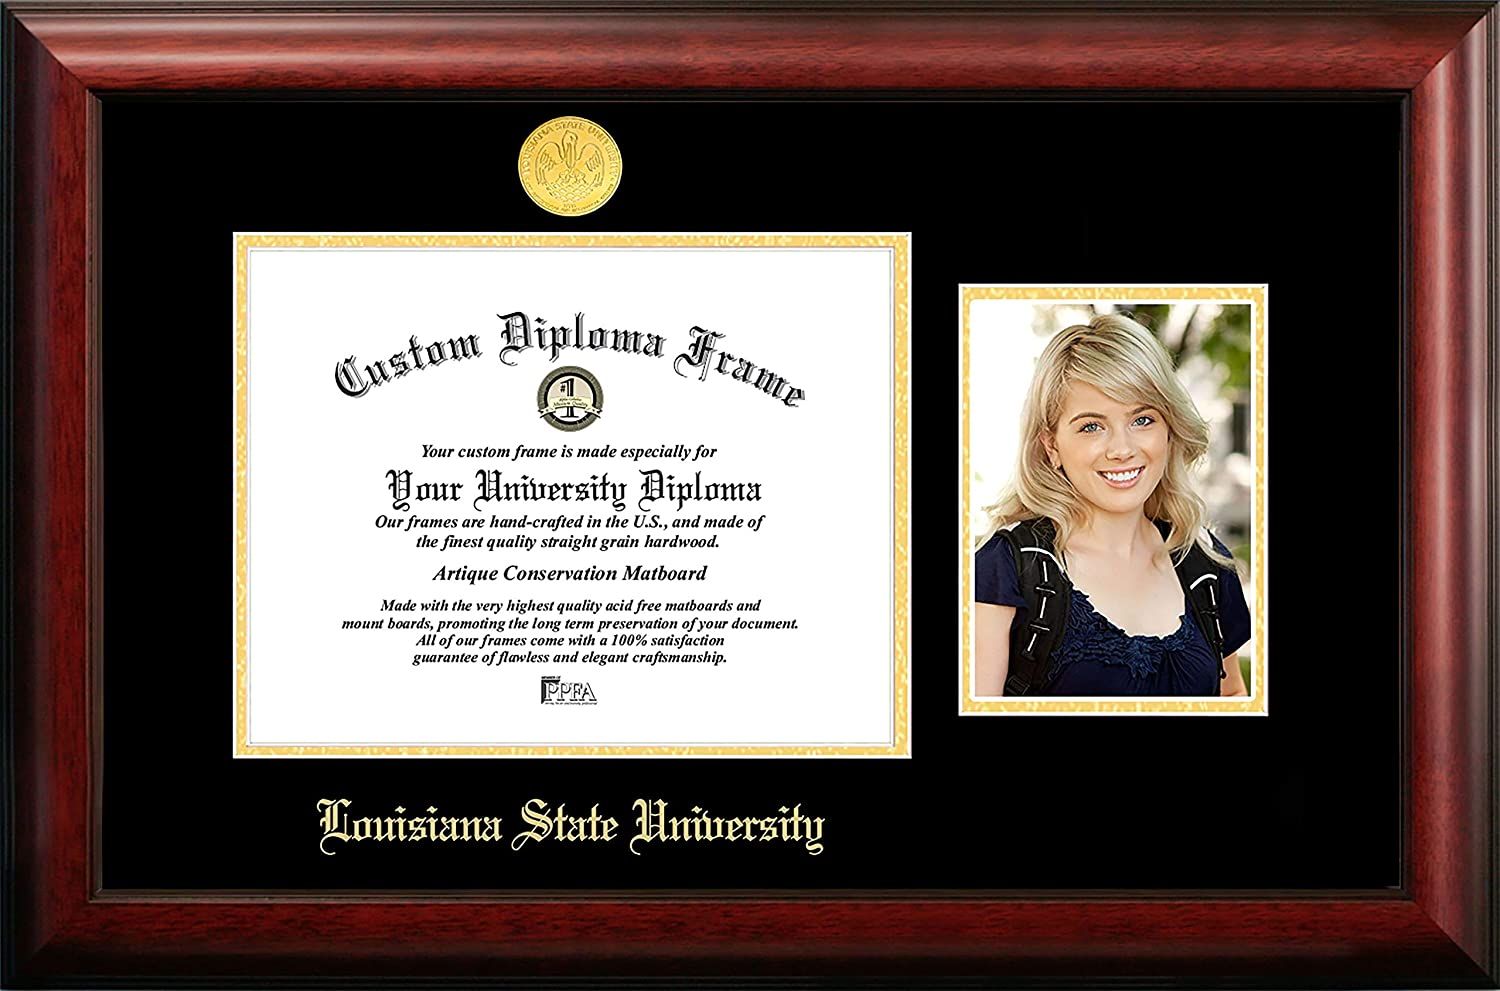 NCAA LSU Tigers Unisex Louisiana State University 11 x 8.5 Inches Gold Embossed Diploma Frame with 5 x 7 Inches Portrait Gold Embossed Diploma Frame with 5 x 7 Inches Portrait Brown One Size